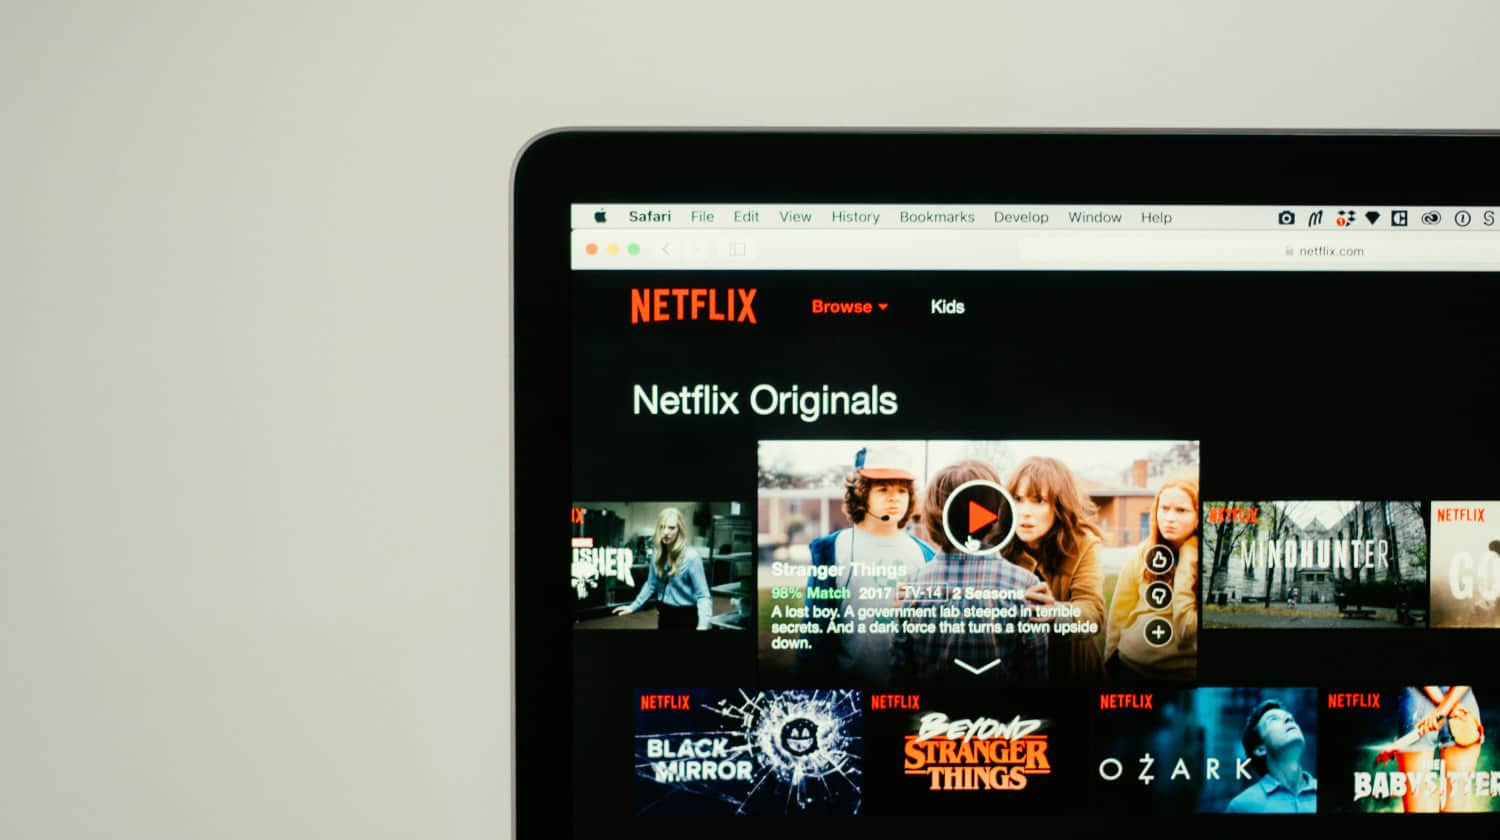 FEATURED | Browsing Netflix | Netflix Downloads Are Here - And I Love Them | streaming service | episodes | downloading